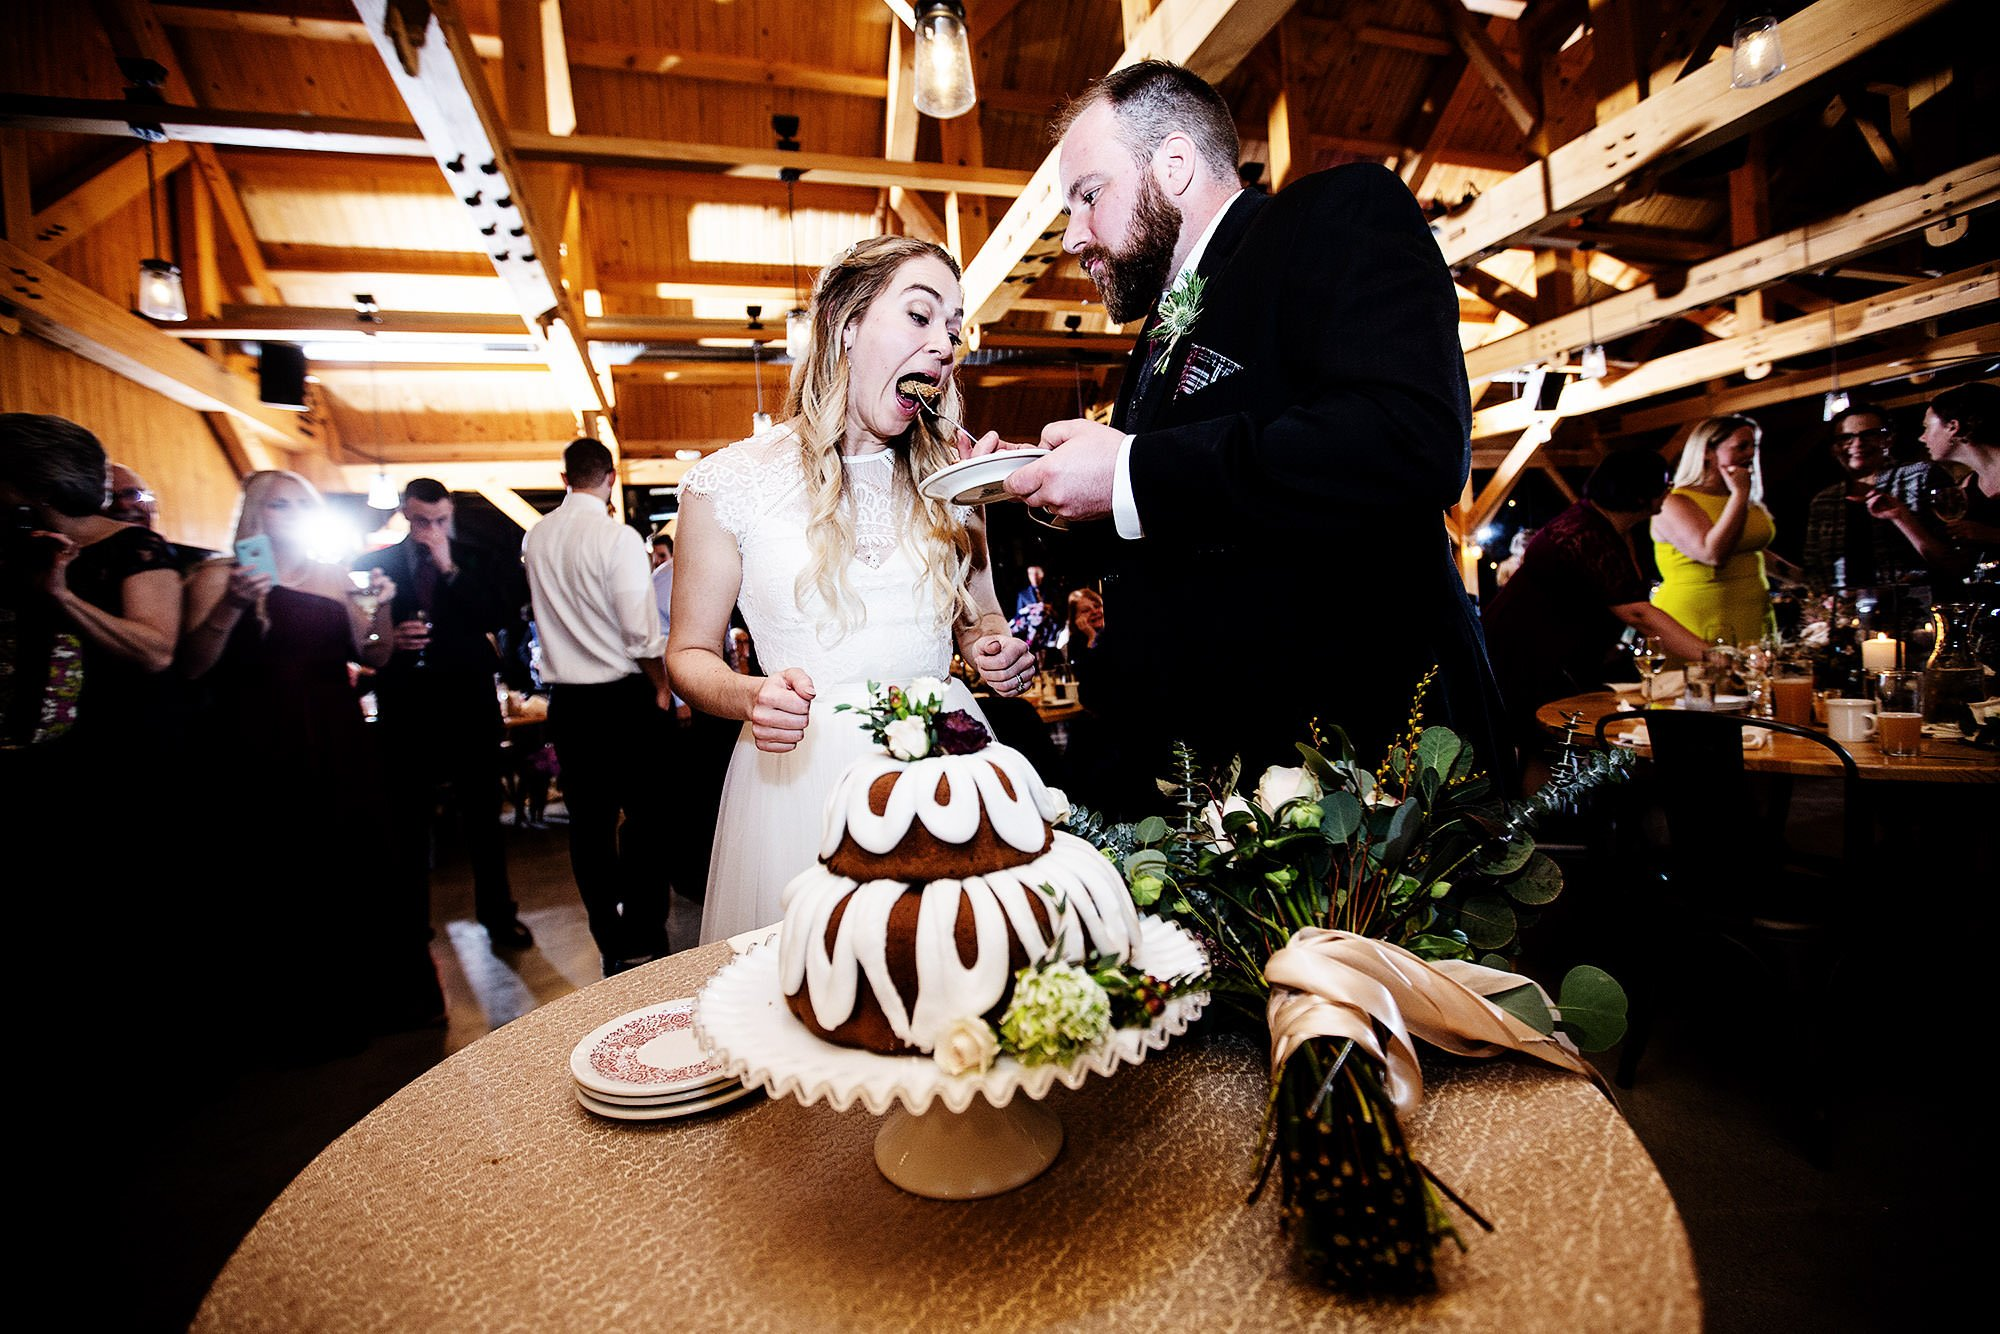 The bride and groom cut the cake at Mad River Barn.